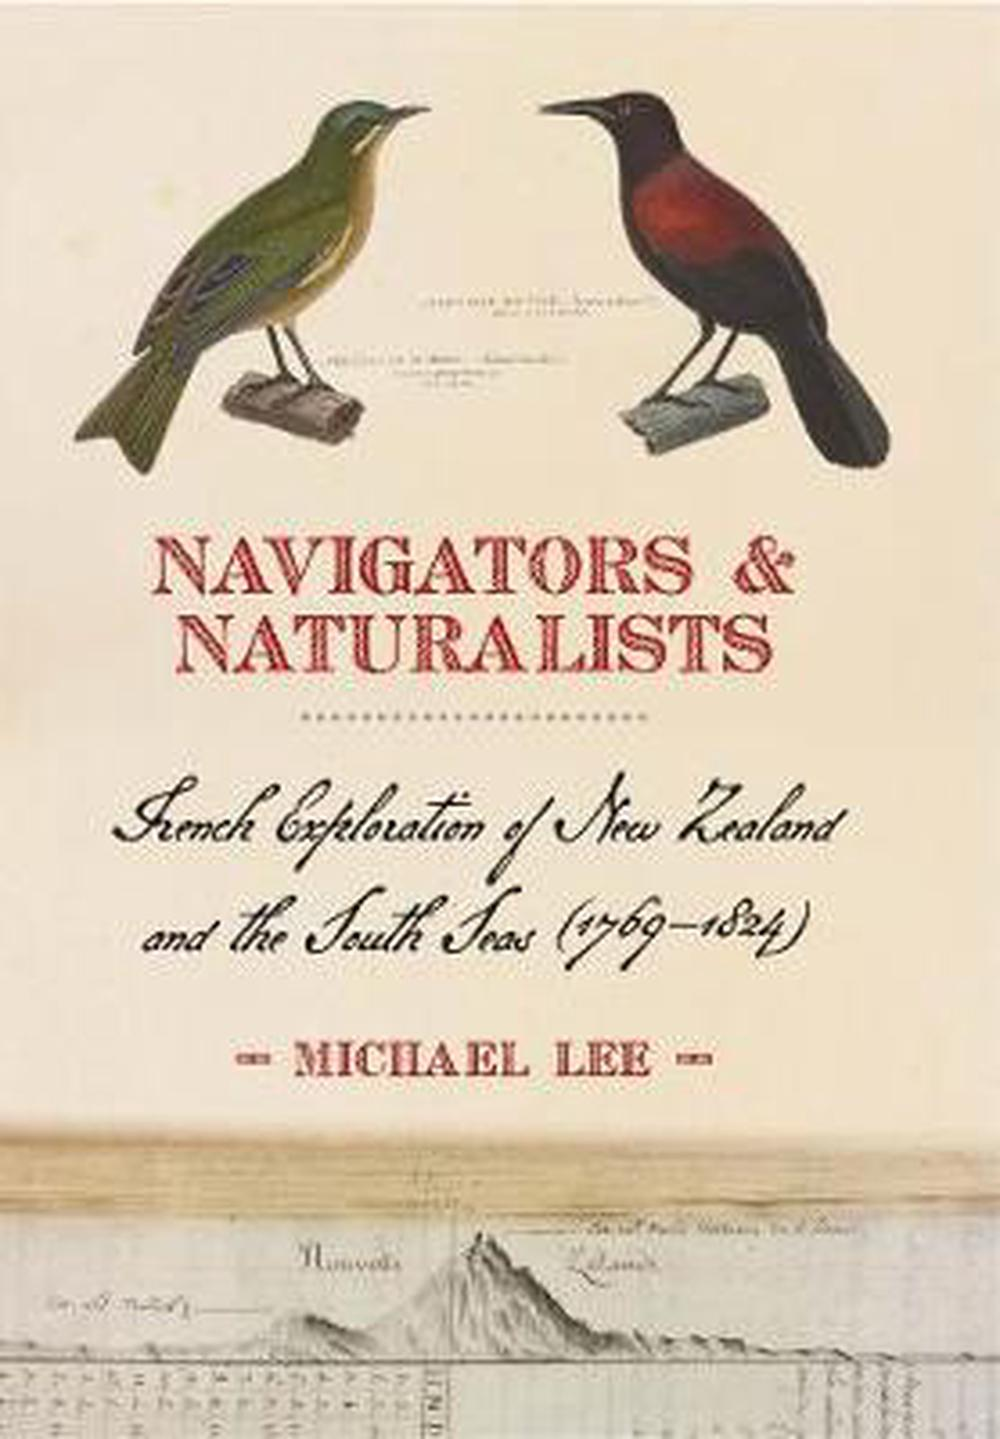 Navigators & Naturalists